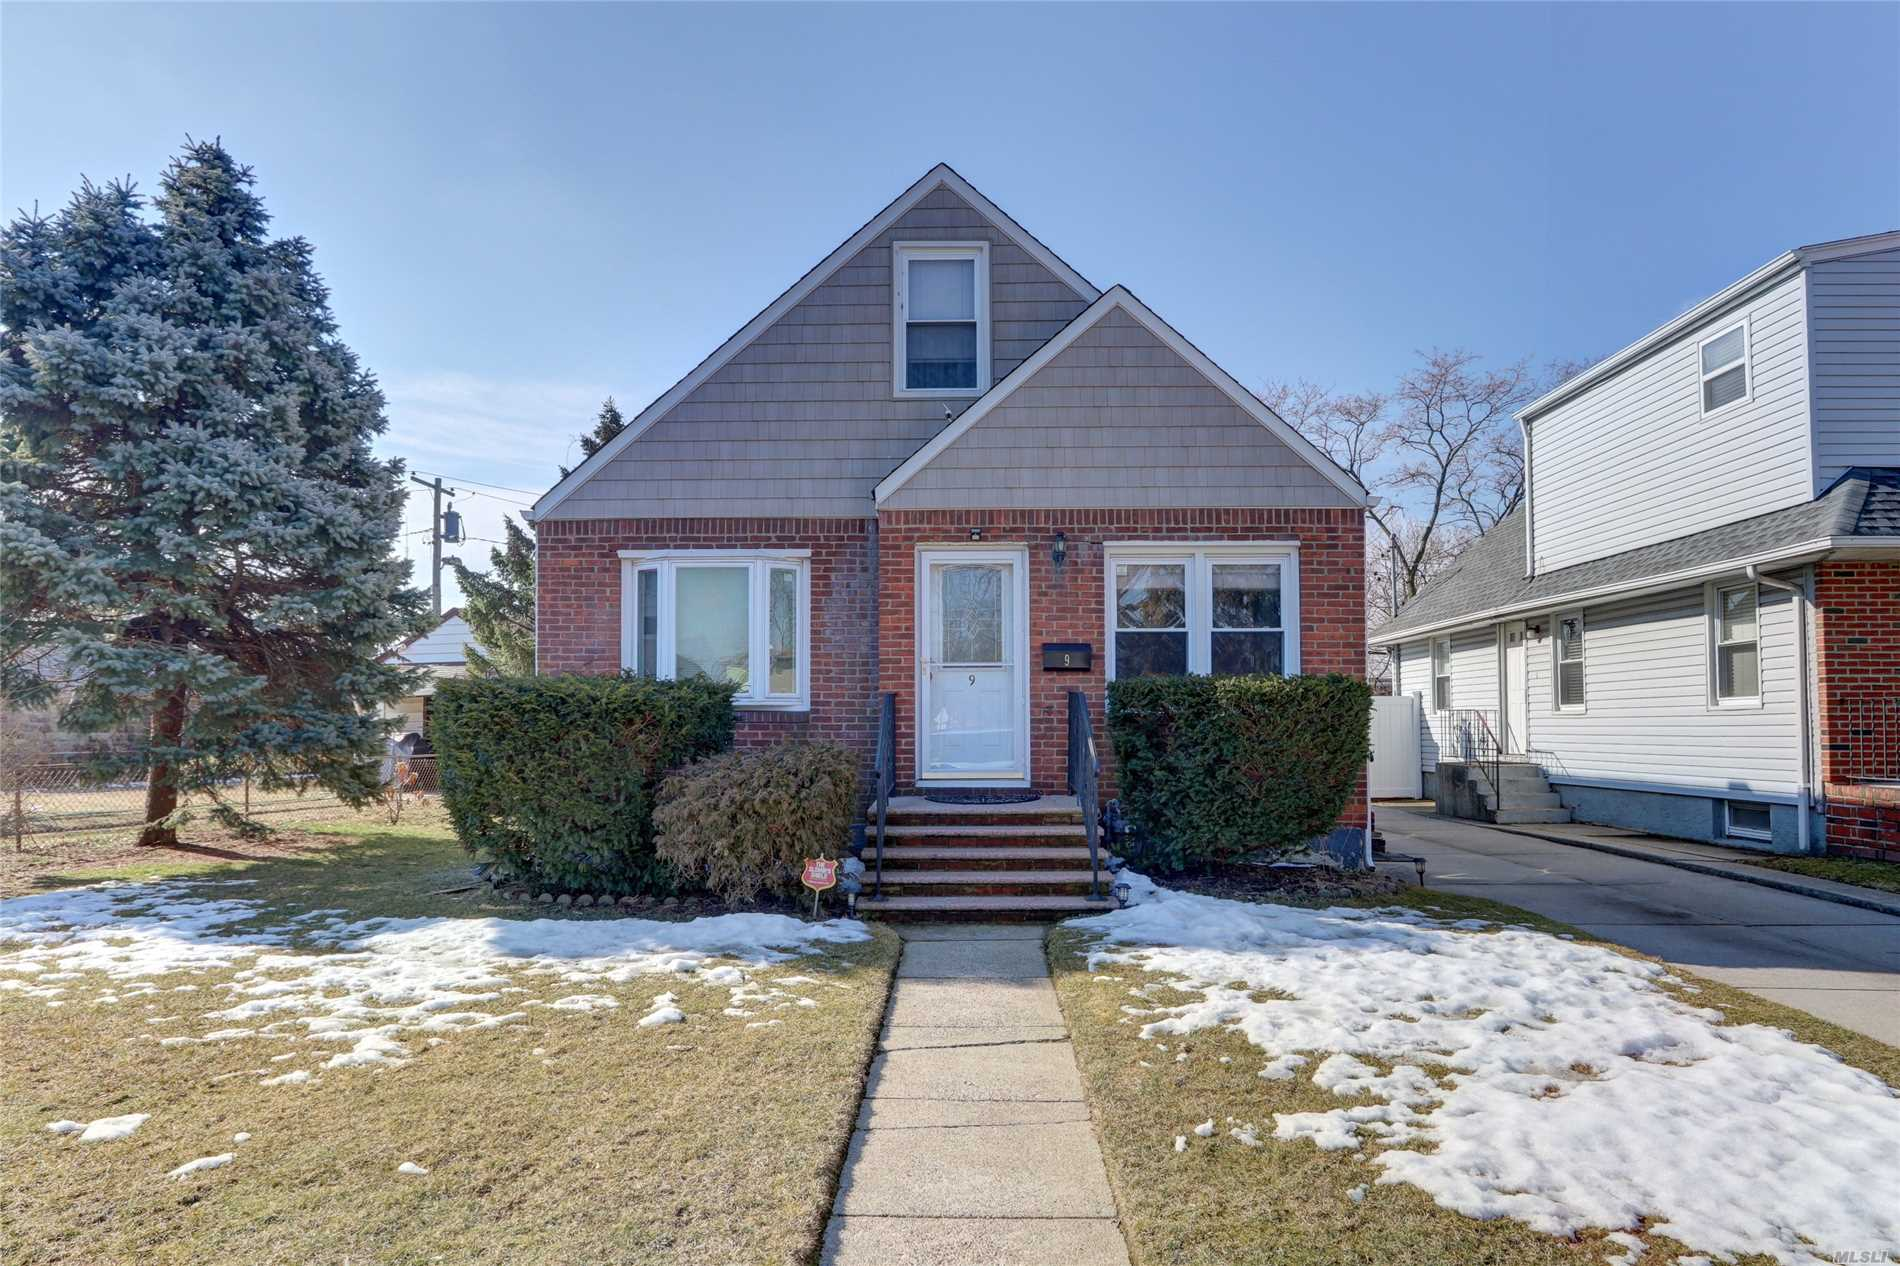 In The Heart Of Elmont. In The Nicest Part Of Elmont Close T0 Major Highways And Jfk Airport. A Beautiful Brick Cape House In Great Condition. Hardwood Floors In The Living Room. Nice Spacious Bedrooms And Plenty Of Space In The Backyard For Kids To Play. Seperate Entrance For The Basement.